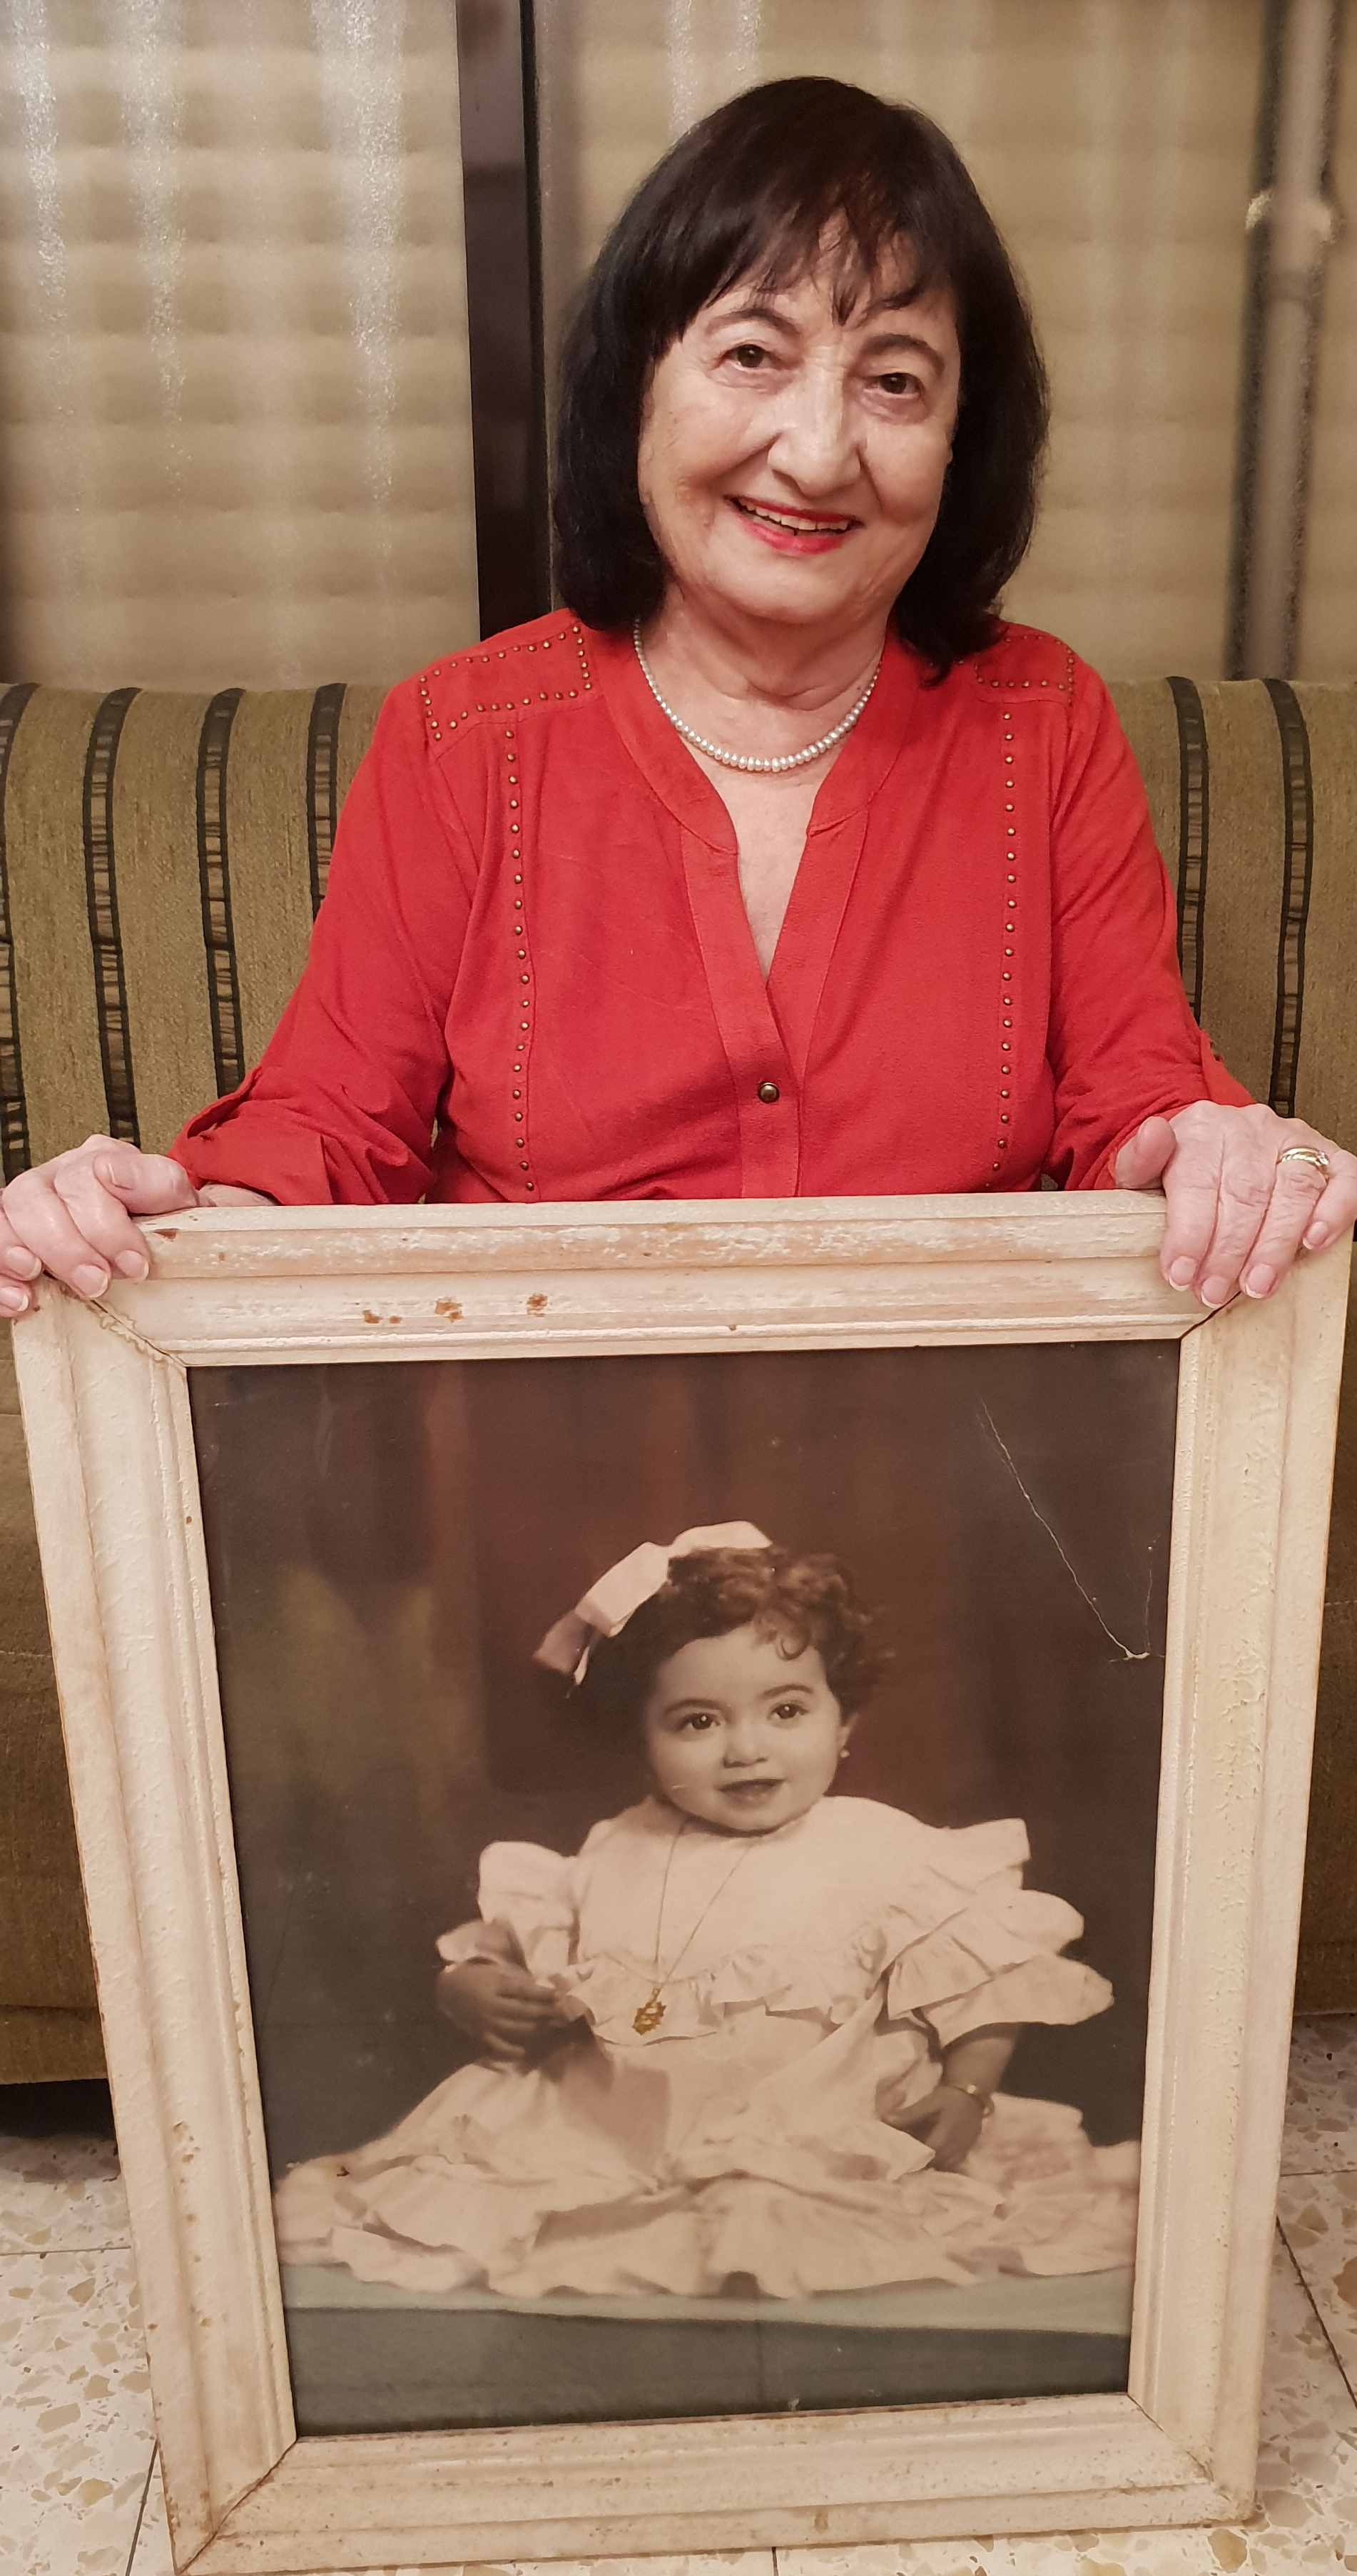 Eva Gabay with her baby picture (Photo: Ilan Gabay)